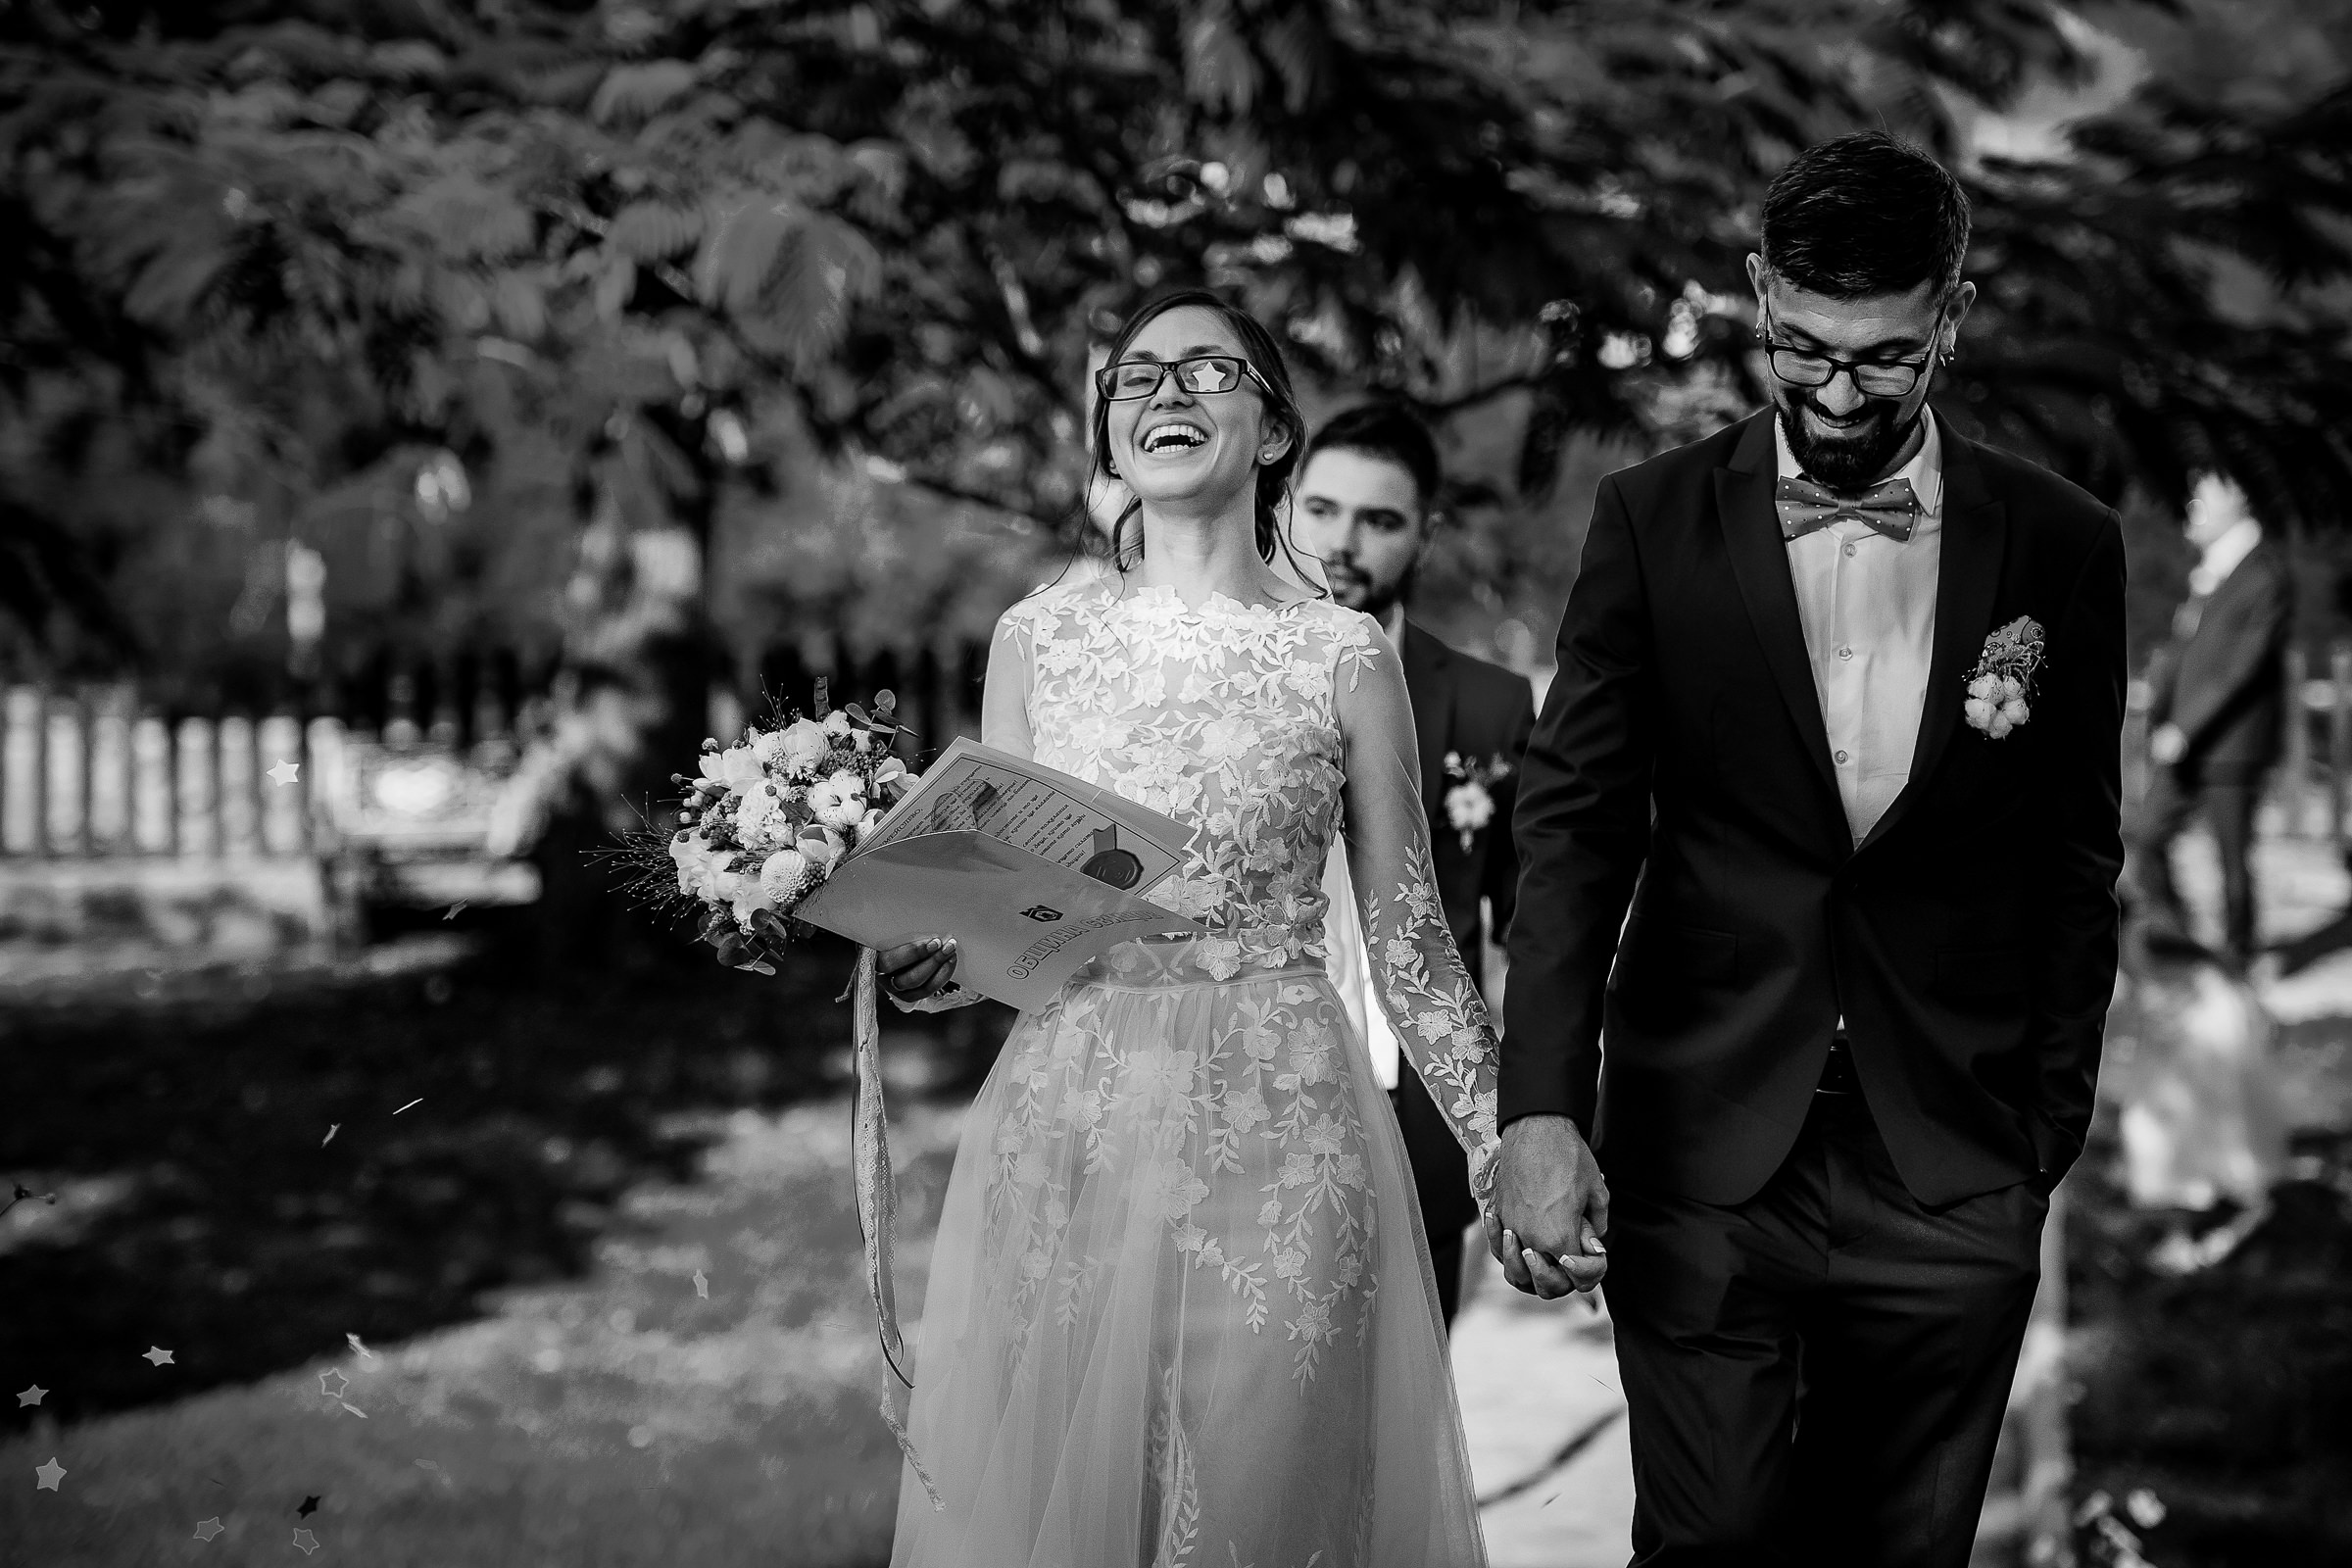 Hand in hand bride and groom - photo by Deliysky Studio